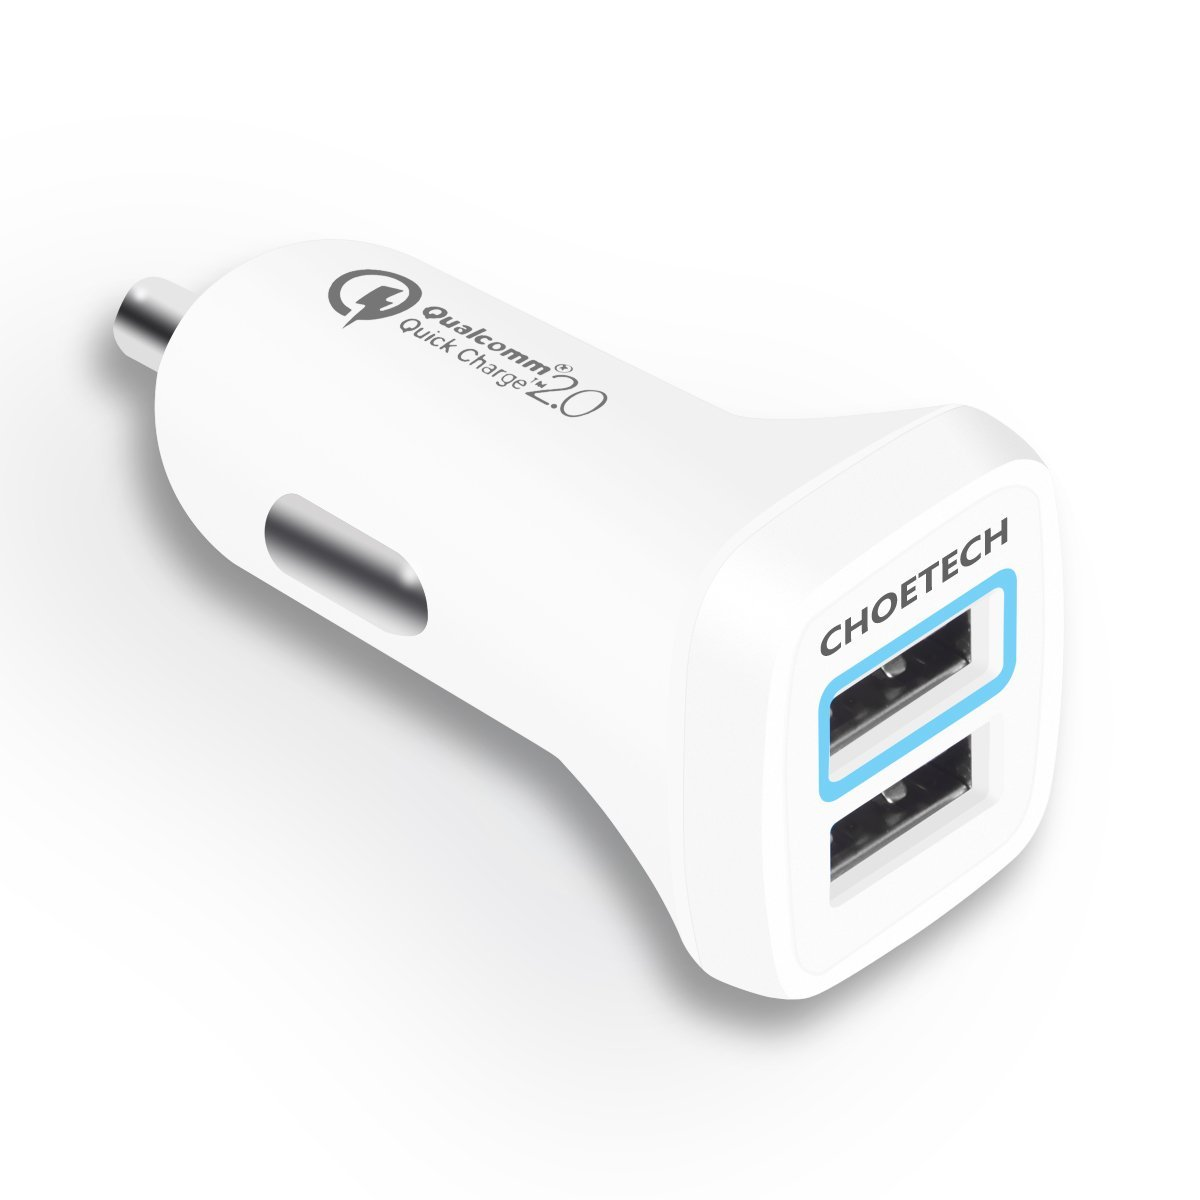 [Deal Alert] Grab A CHOETECH 2-Port Quick-Charge 2.0 Car Charger For $10.50 On Amazon After $5.50 Off Coupon